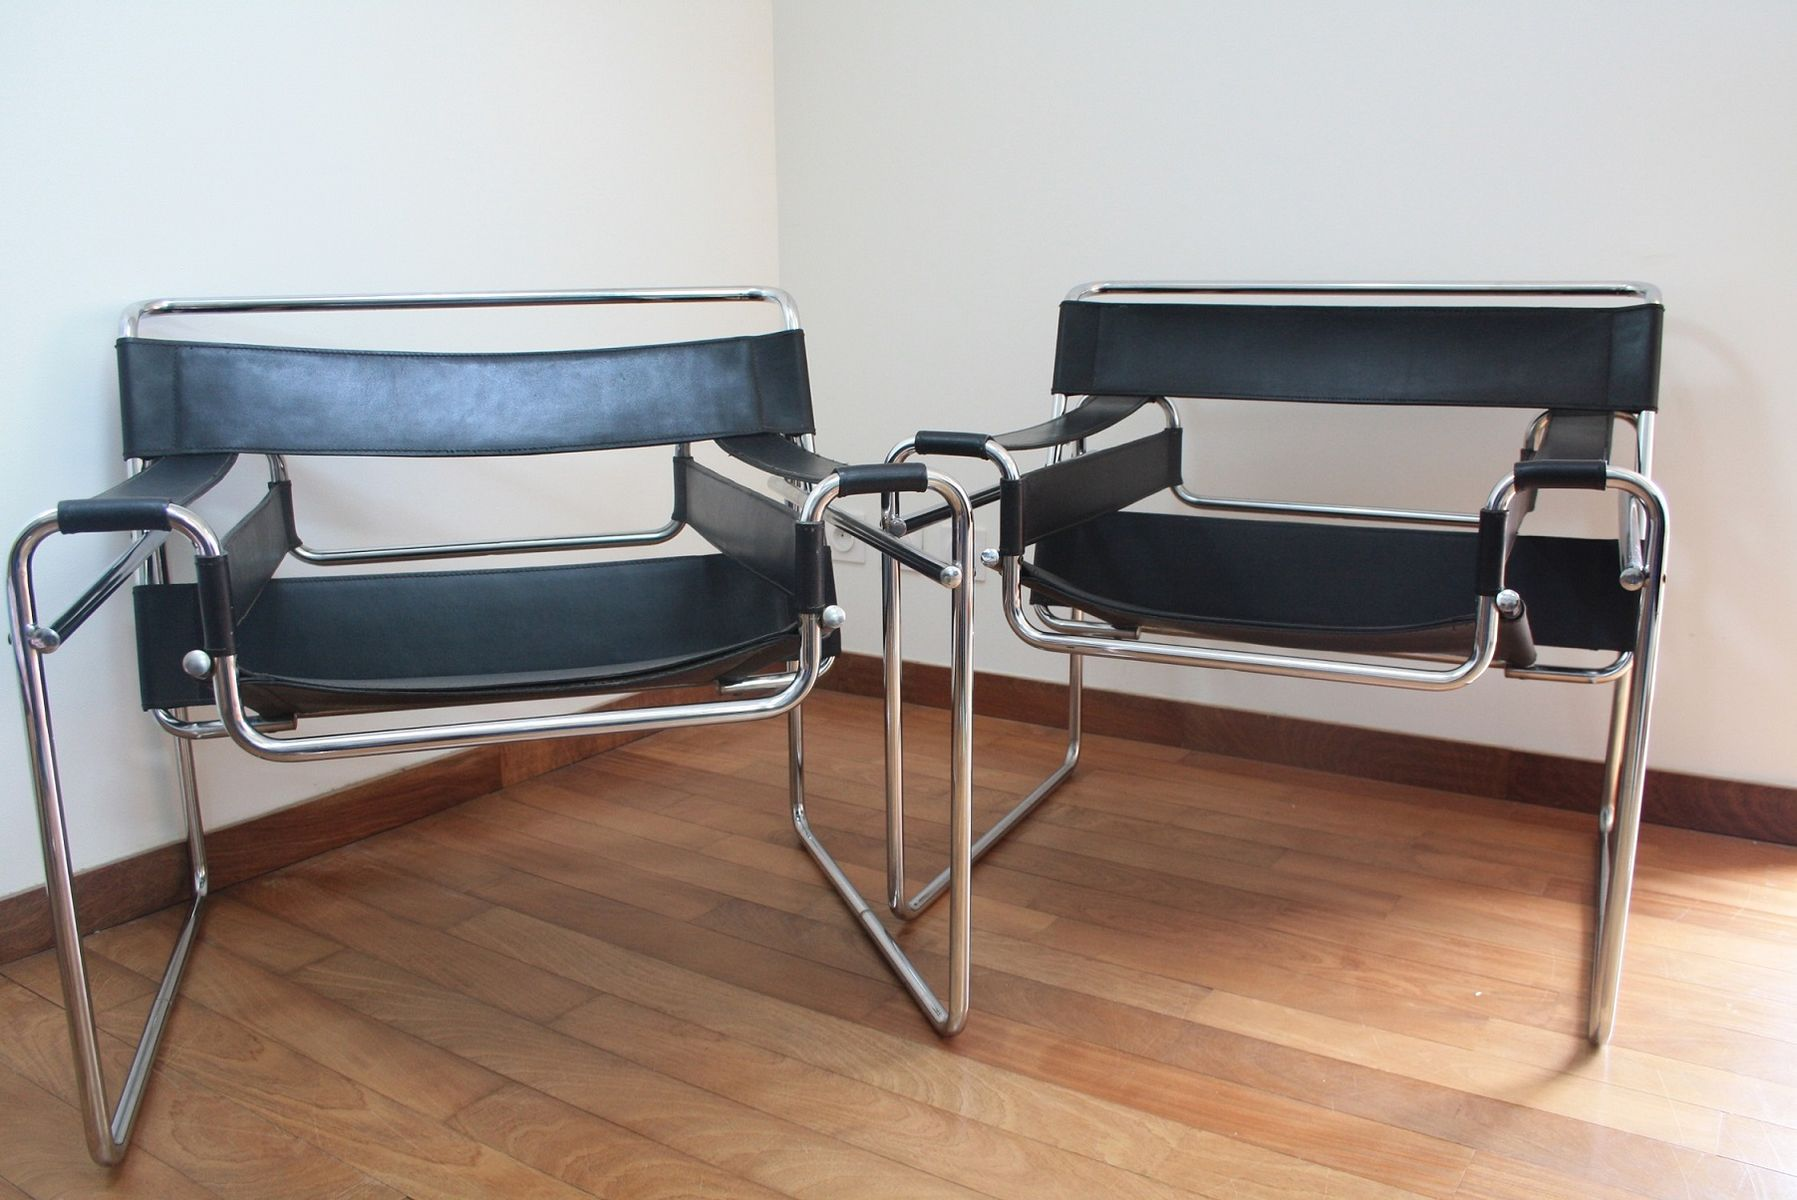 b3 wassily sessel von marcel breuer 1960er 2er set bei pamono kaufen. Black Bedroom Furniture Sets. Home Design Ideas